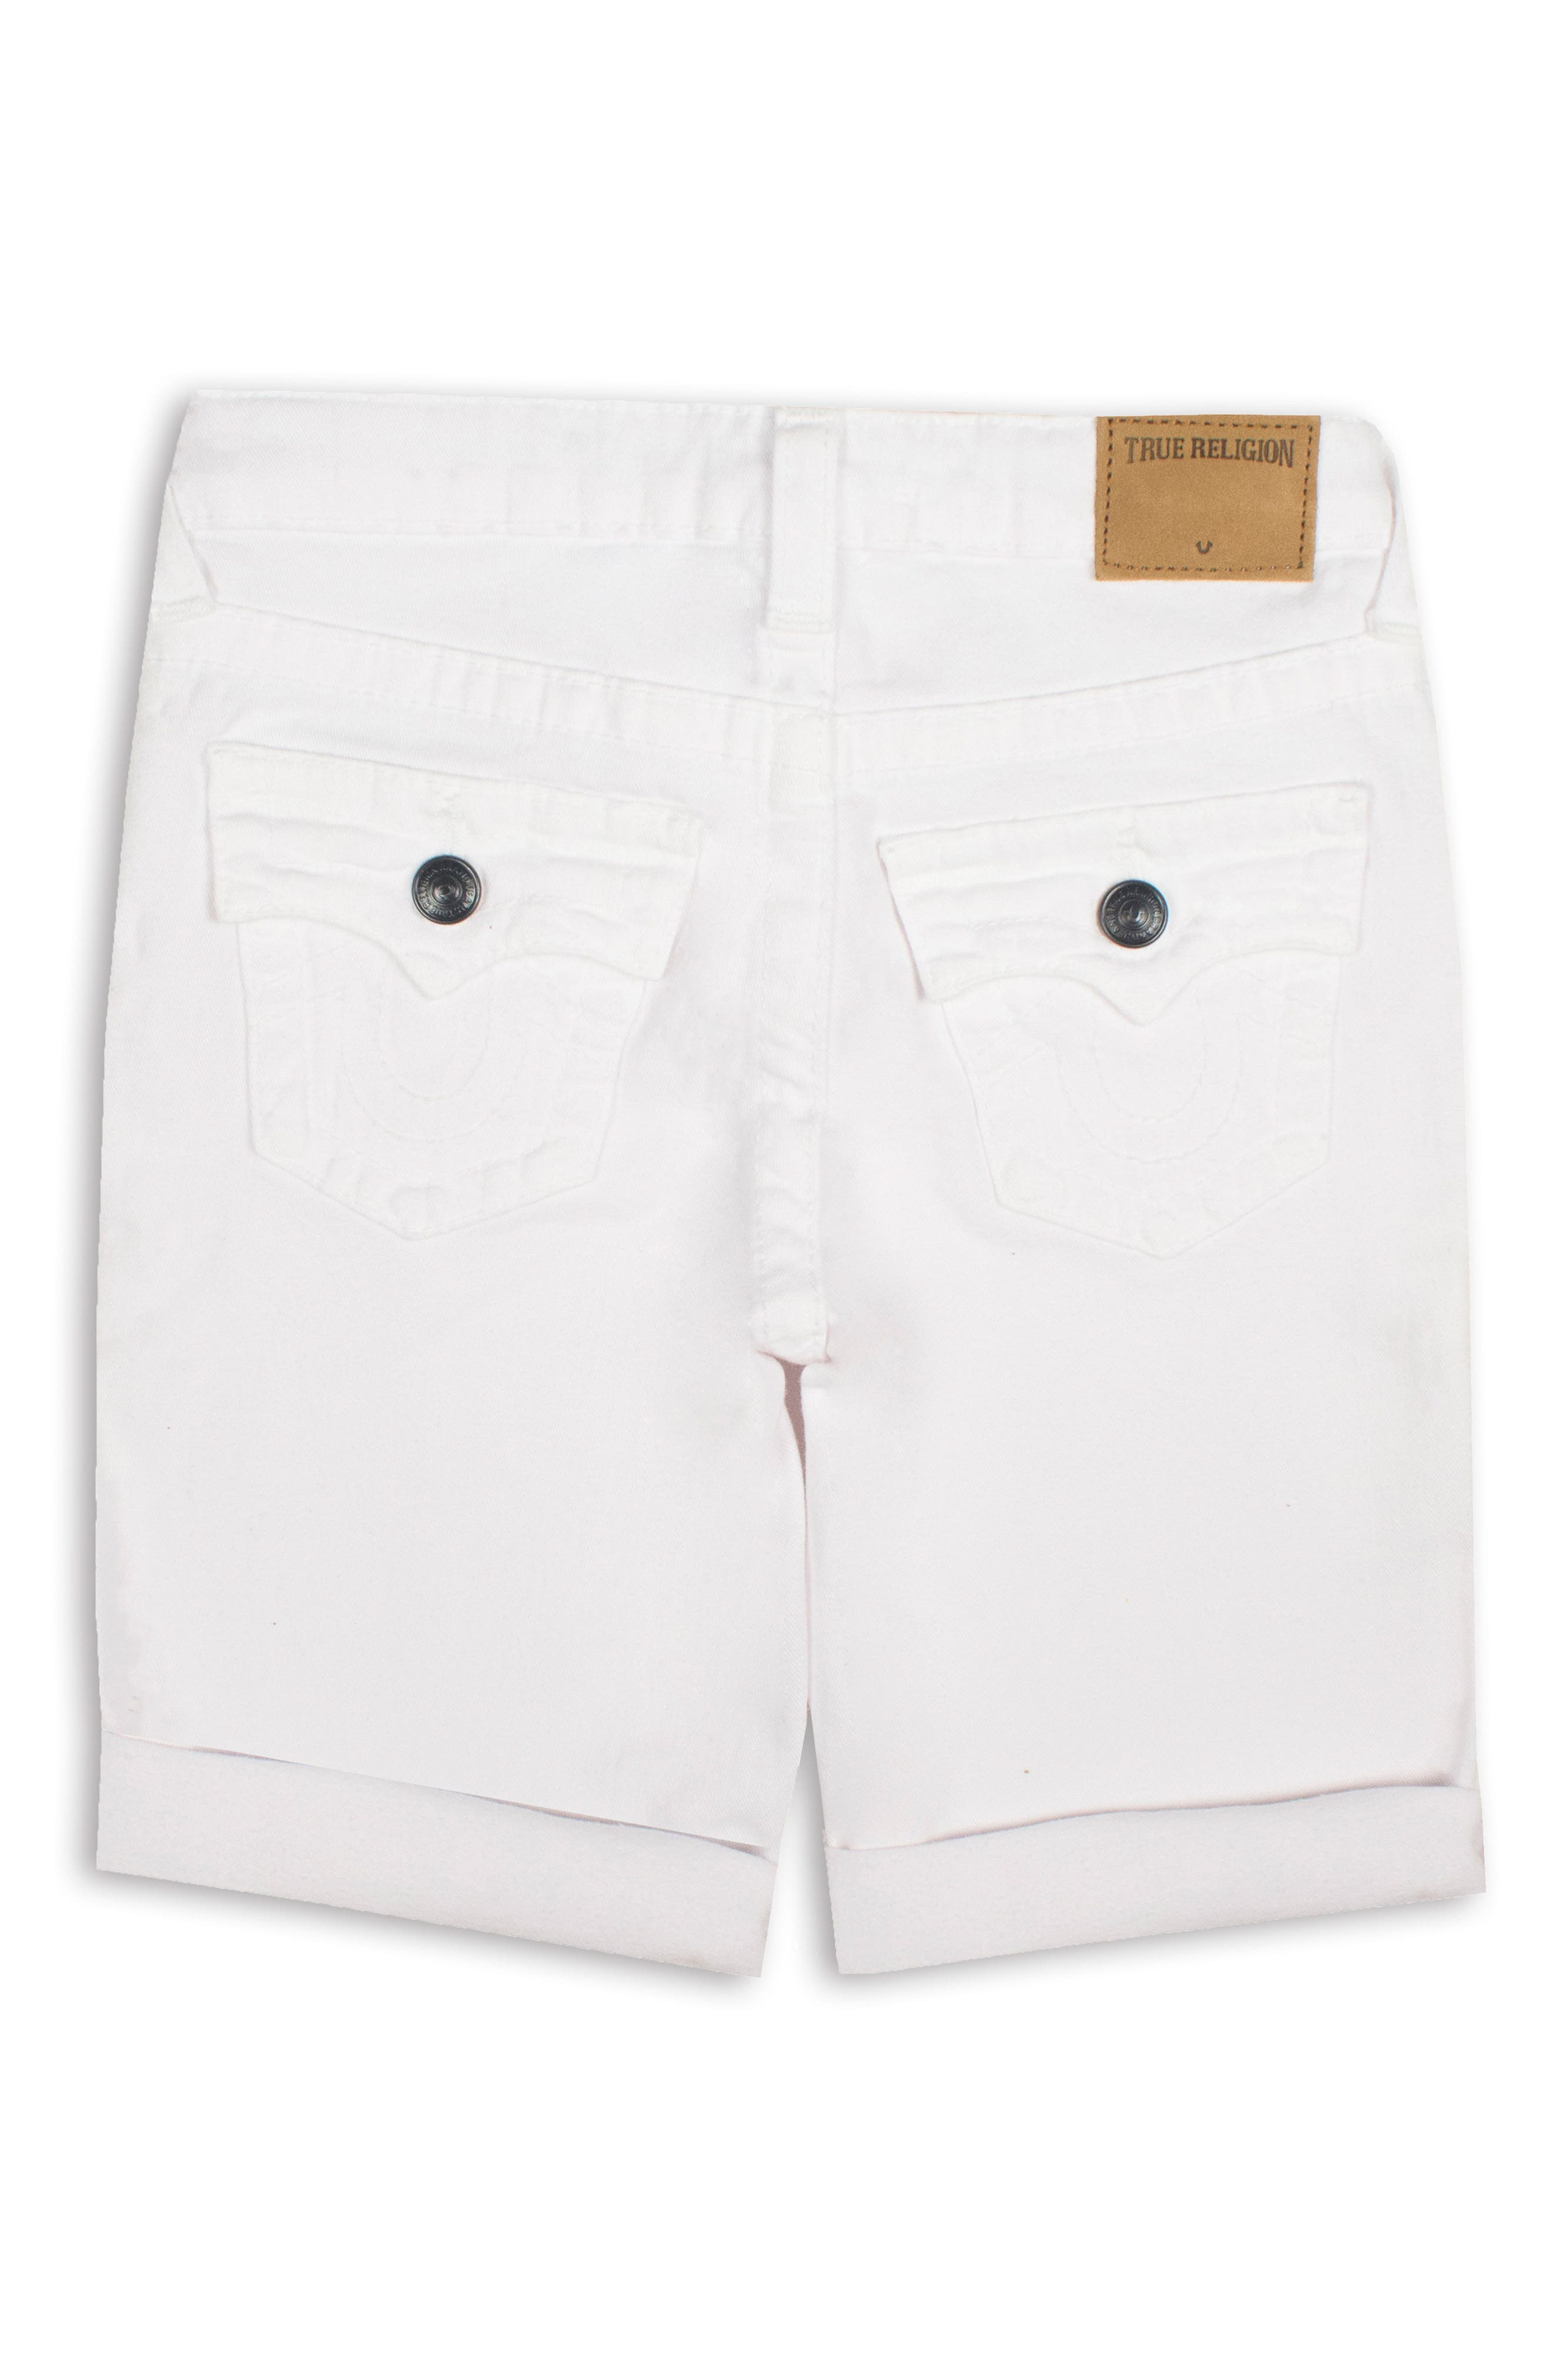 Boys True Religion Brand Jeans Geno Denim Shorts Size 16  White